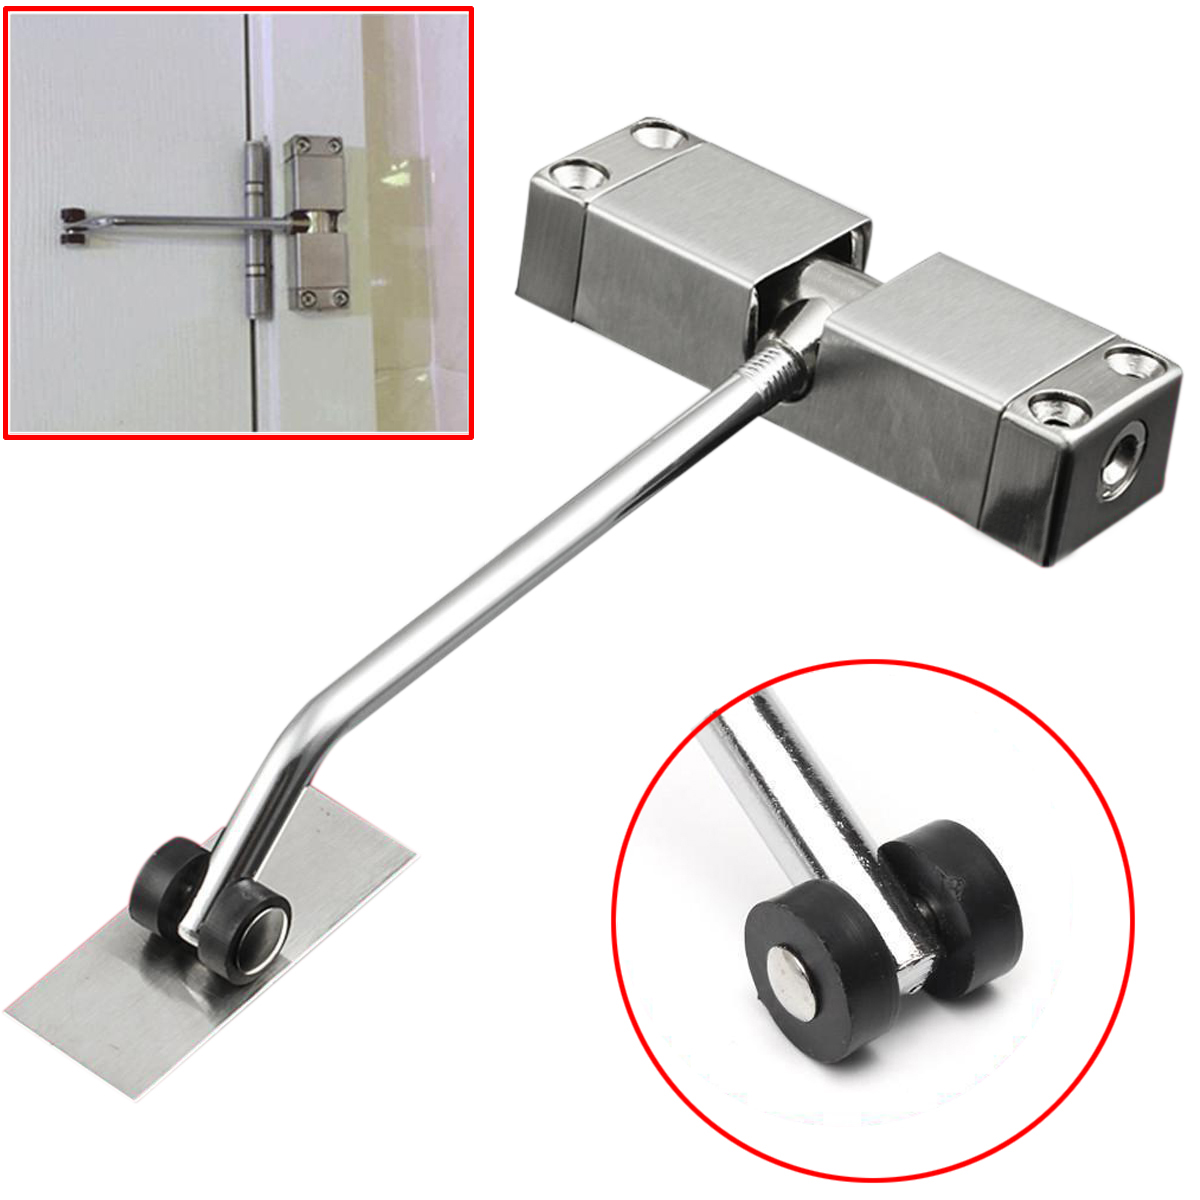 1pc Automatic Mounted Spring Door Closer Stainless Steel Adjustable Surface Door Closer 160x96x20mm with inner hexagon wrench 1pc automatic mounted spring door closer stainless steel adjustable surface door closer 160x96x20mm page 6